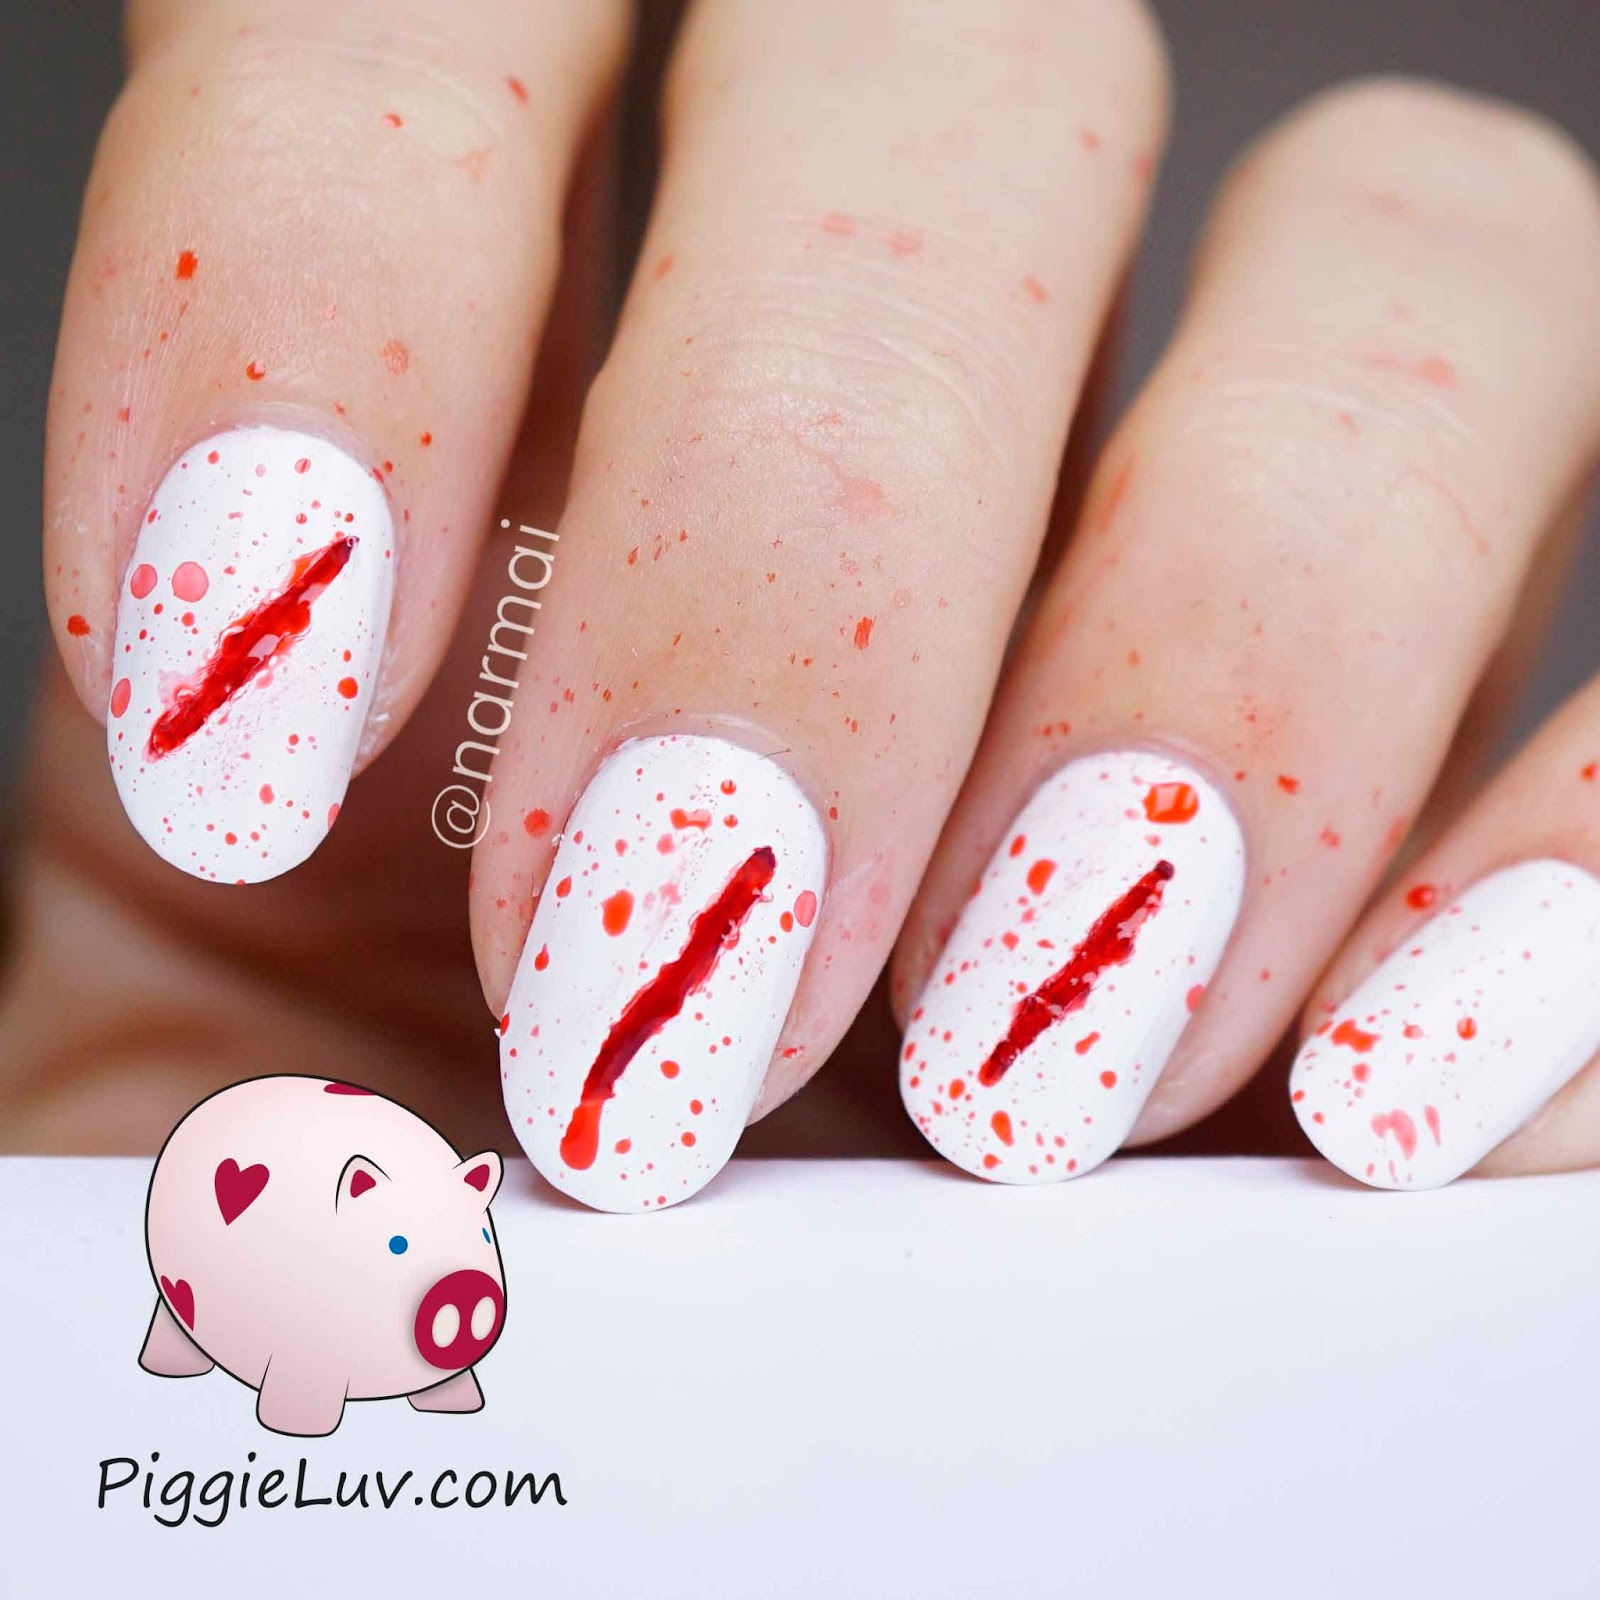 PiggieLuv: Bloody scratches nail art for Halloween